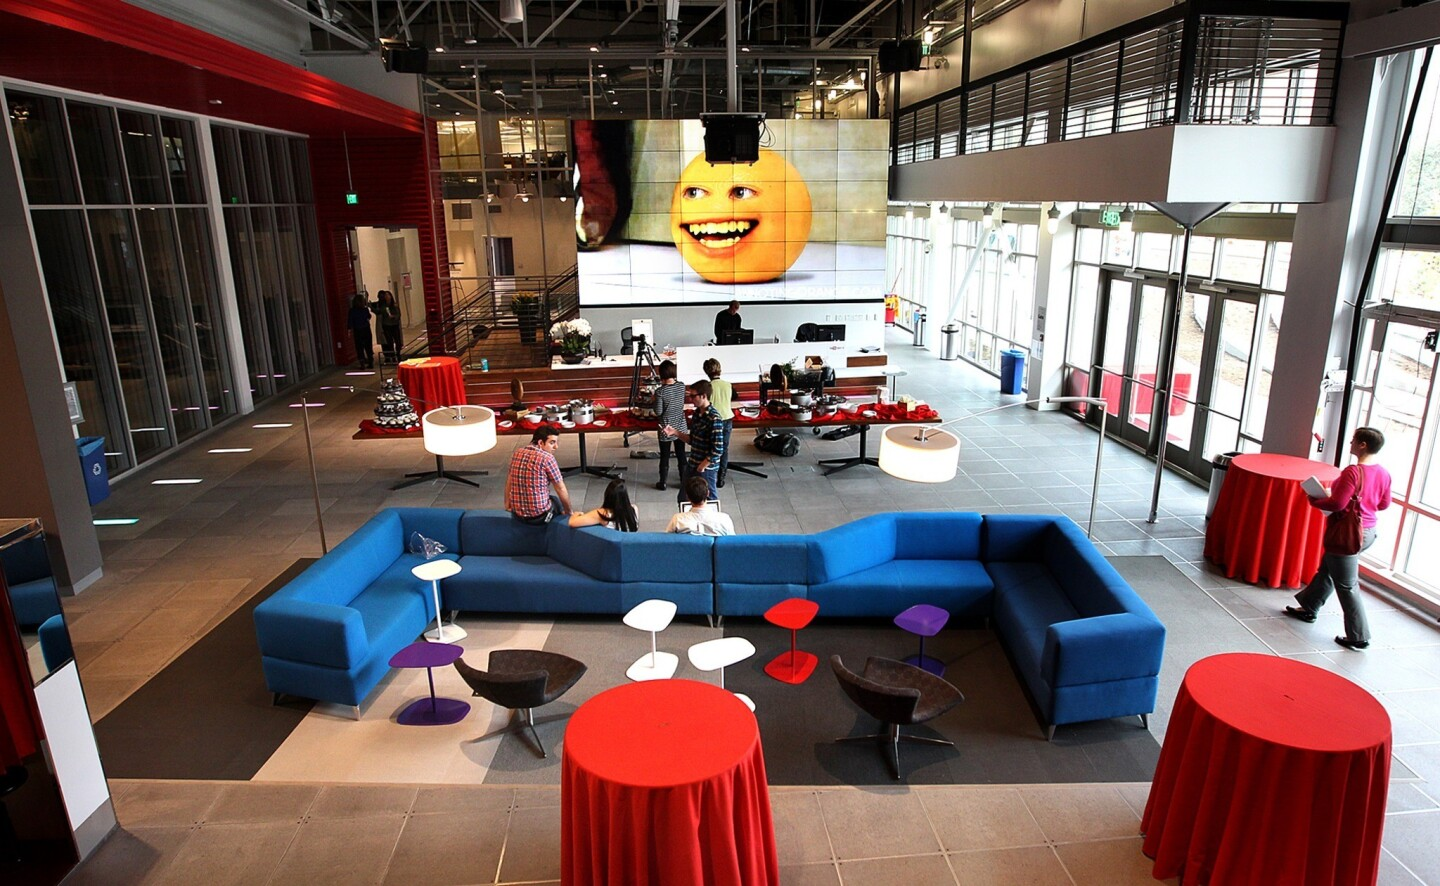 The new You Tube Space in Playa Del Rey is a state-of-the-art production facility for creators.